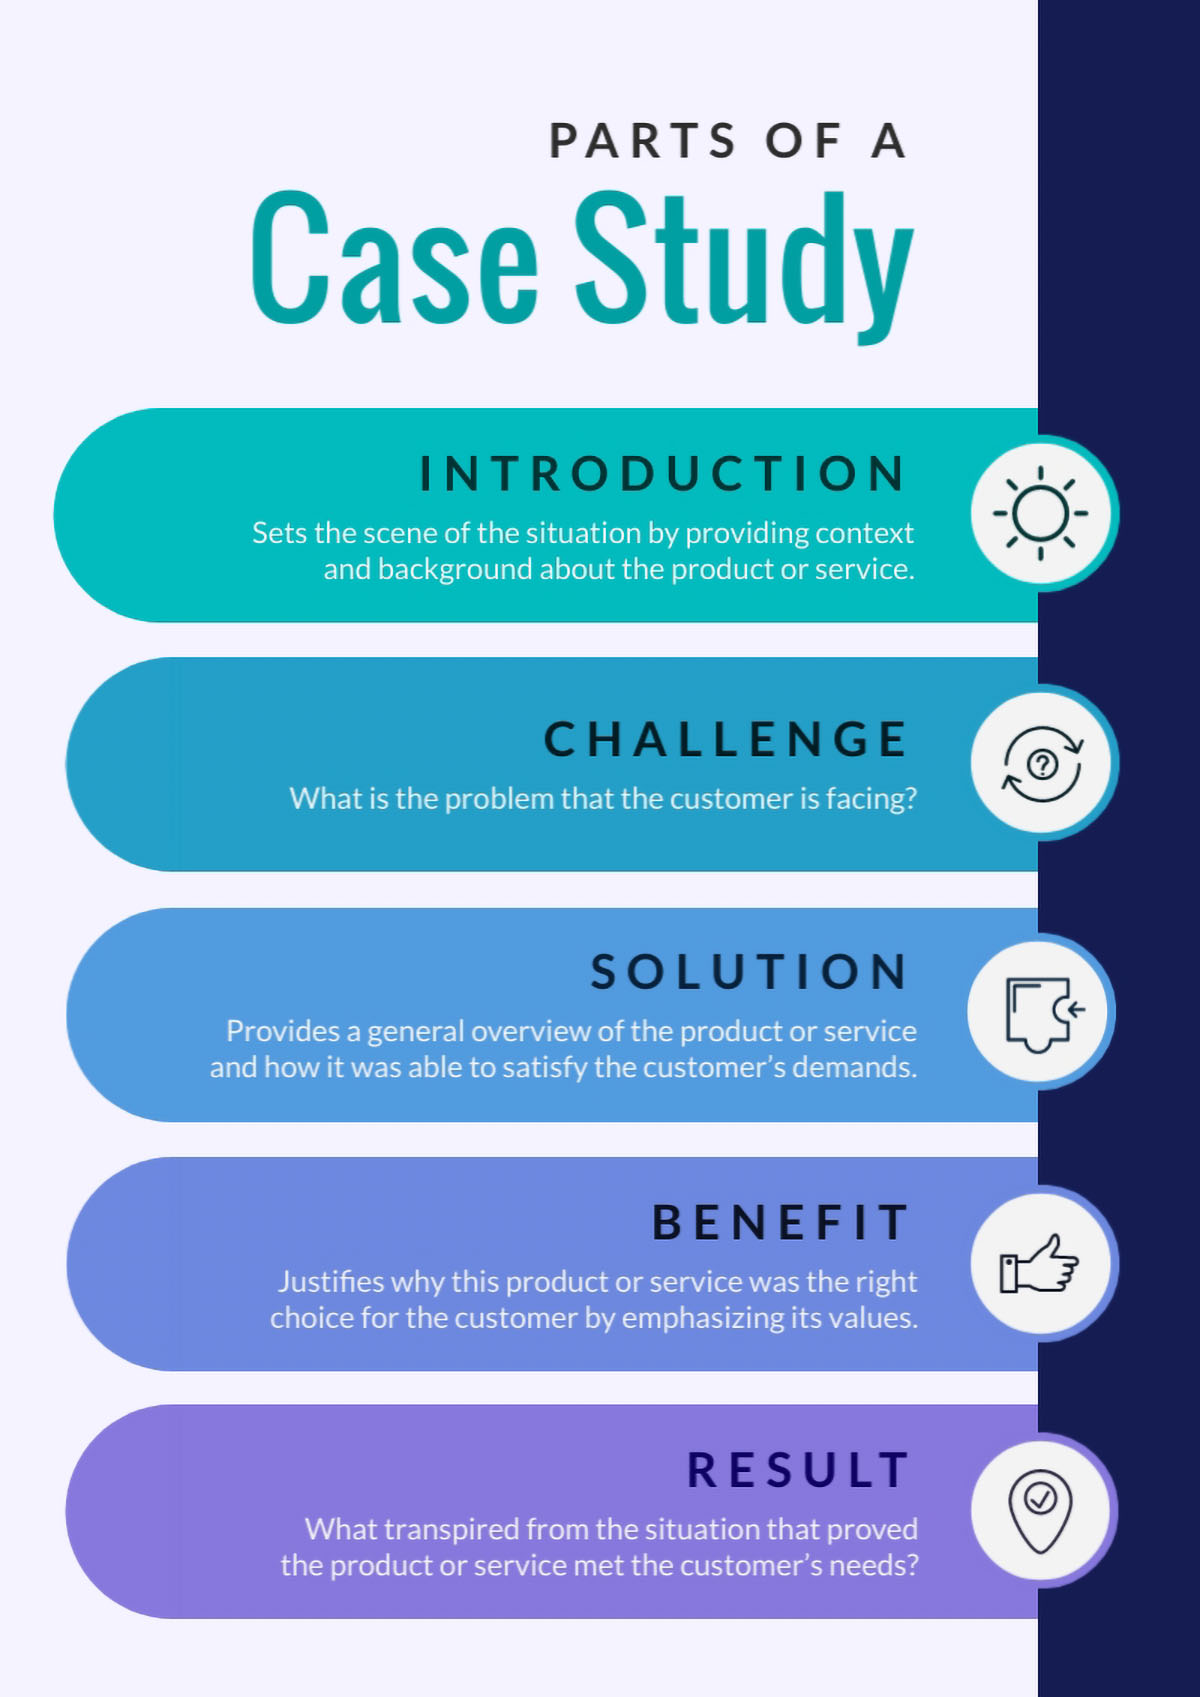 case study infographic - parts of a case study